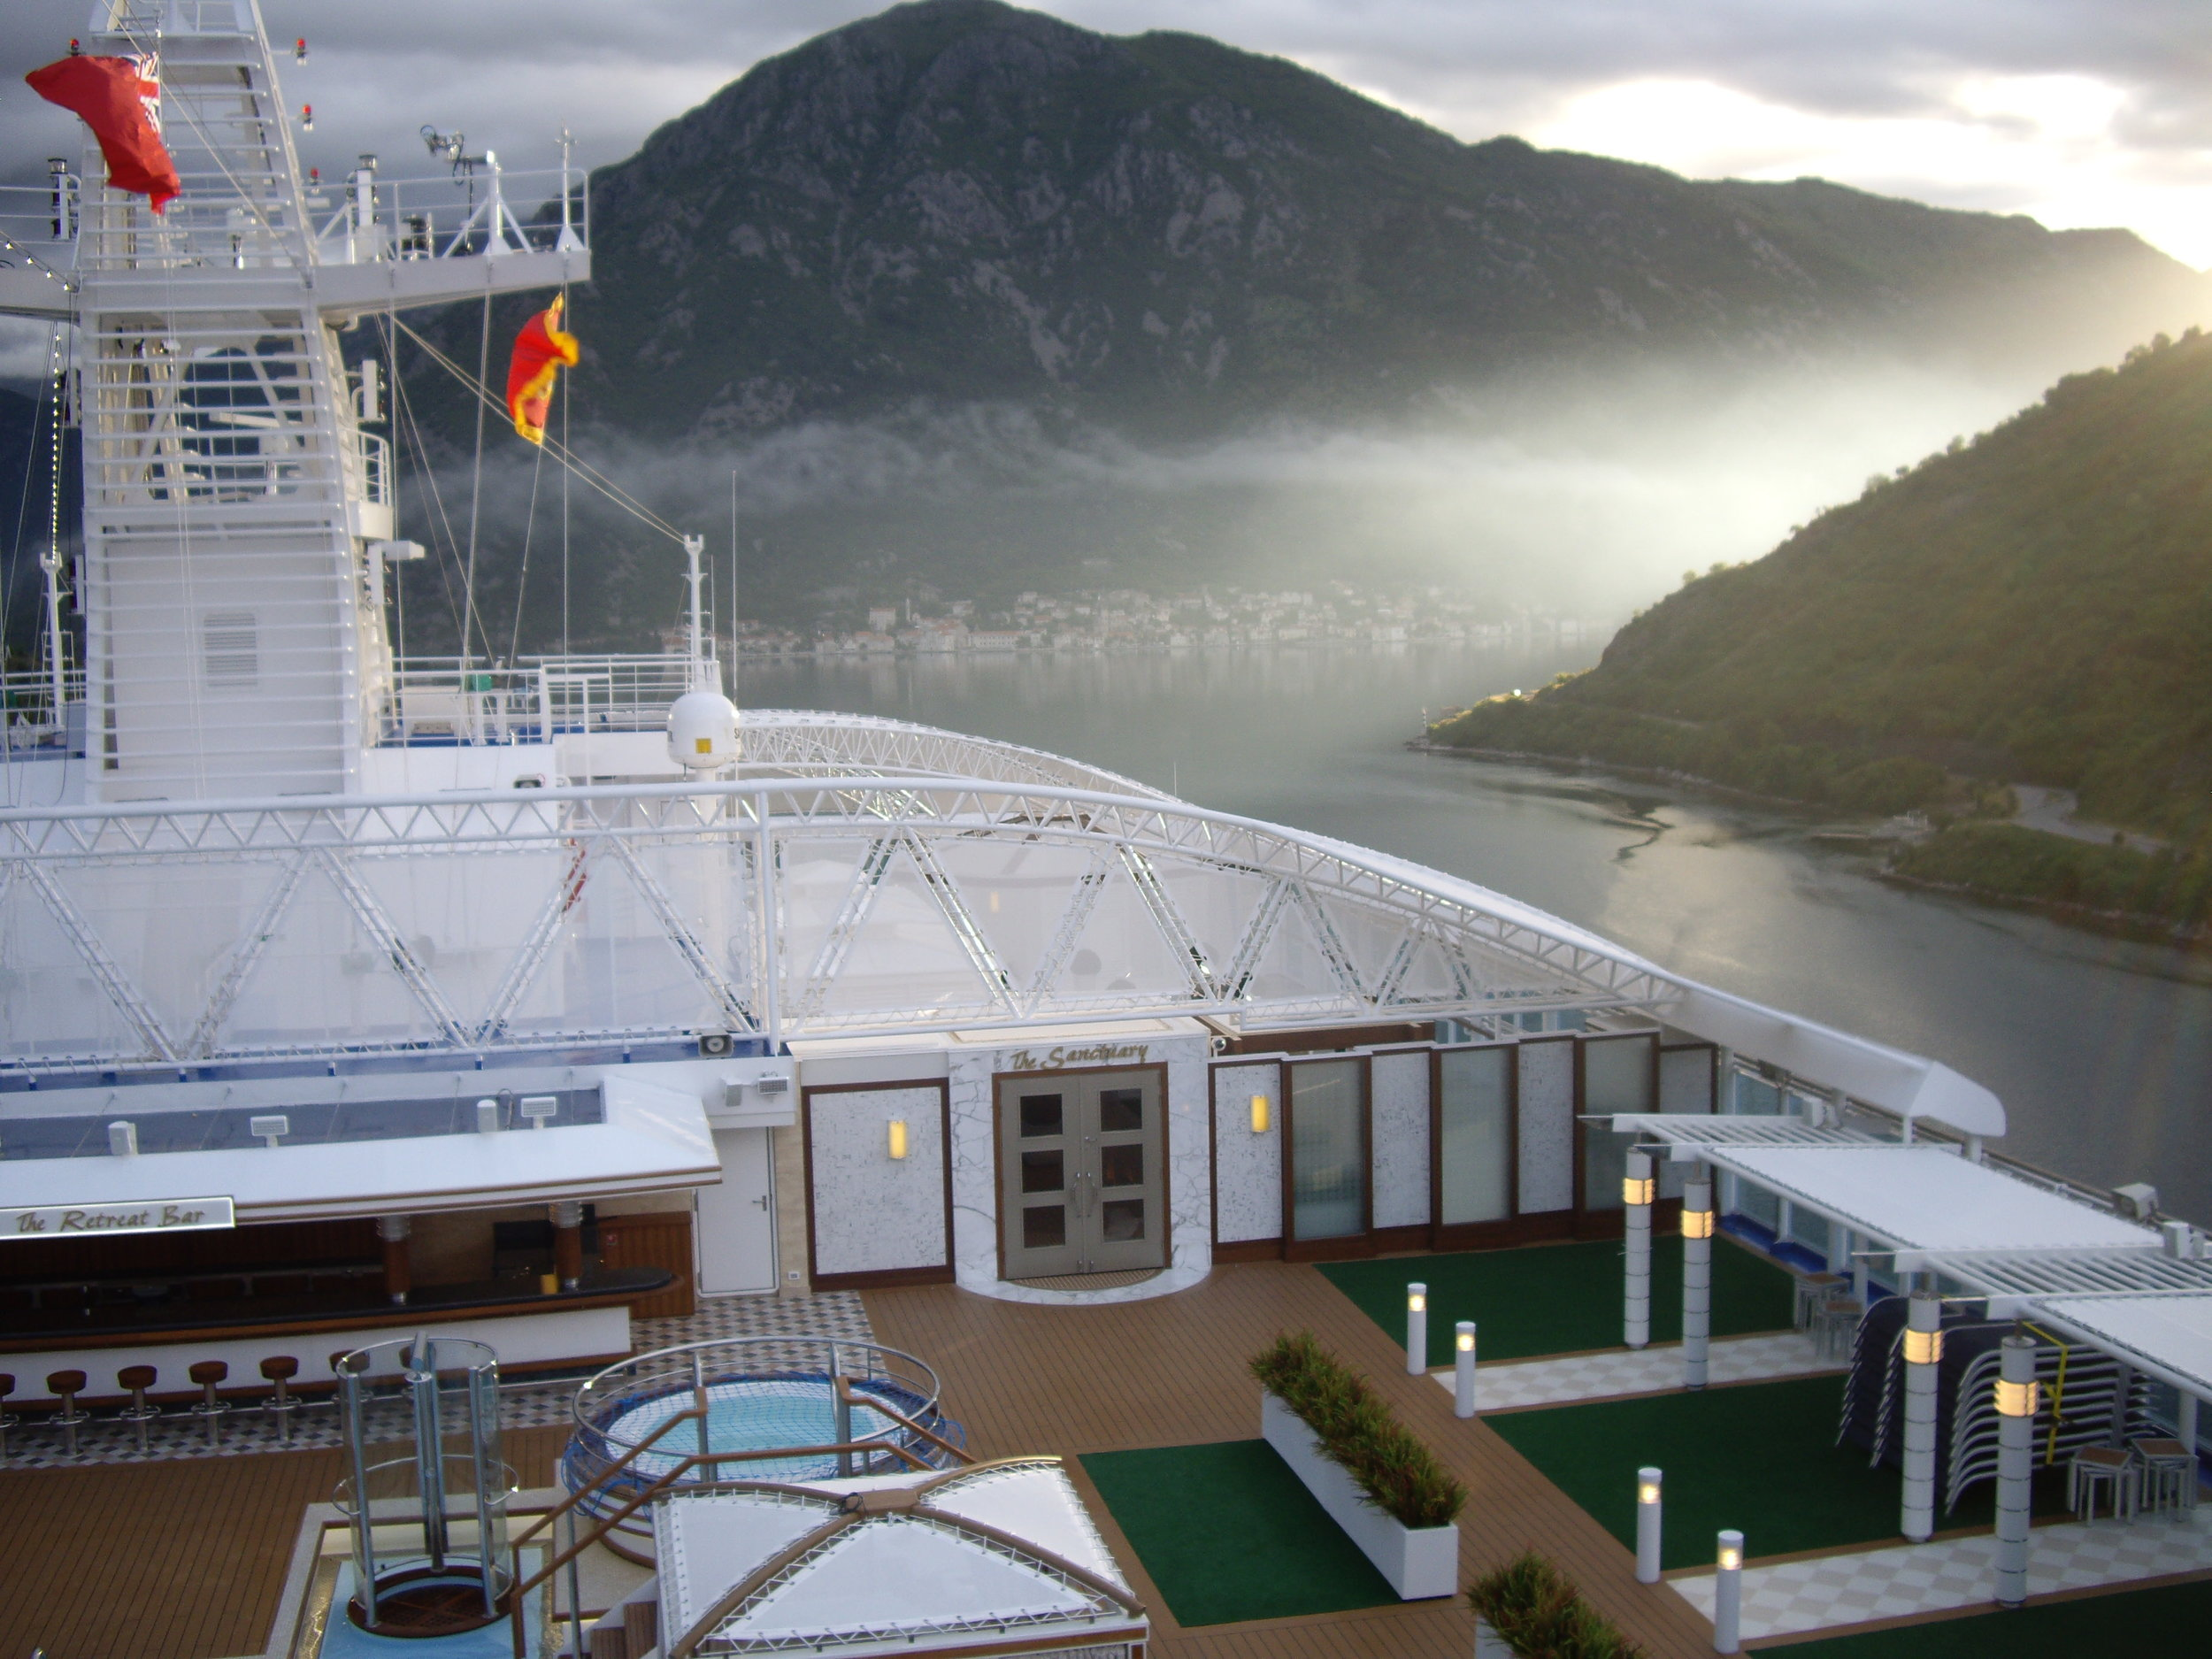 Kotor, Montenegro in the early morning mist - from Regal Princess.